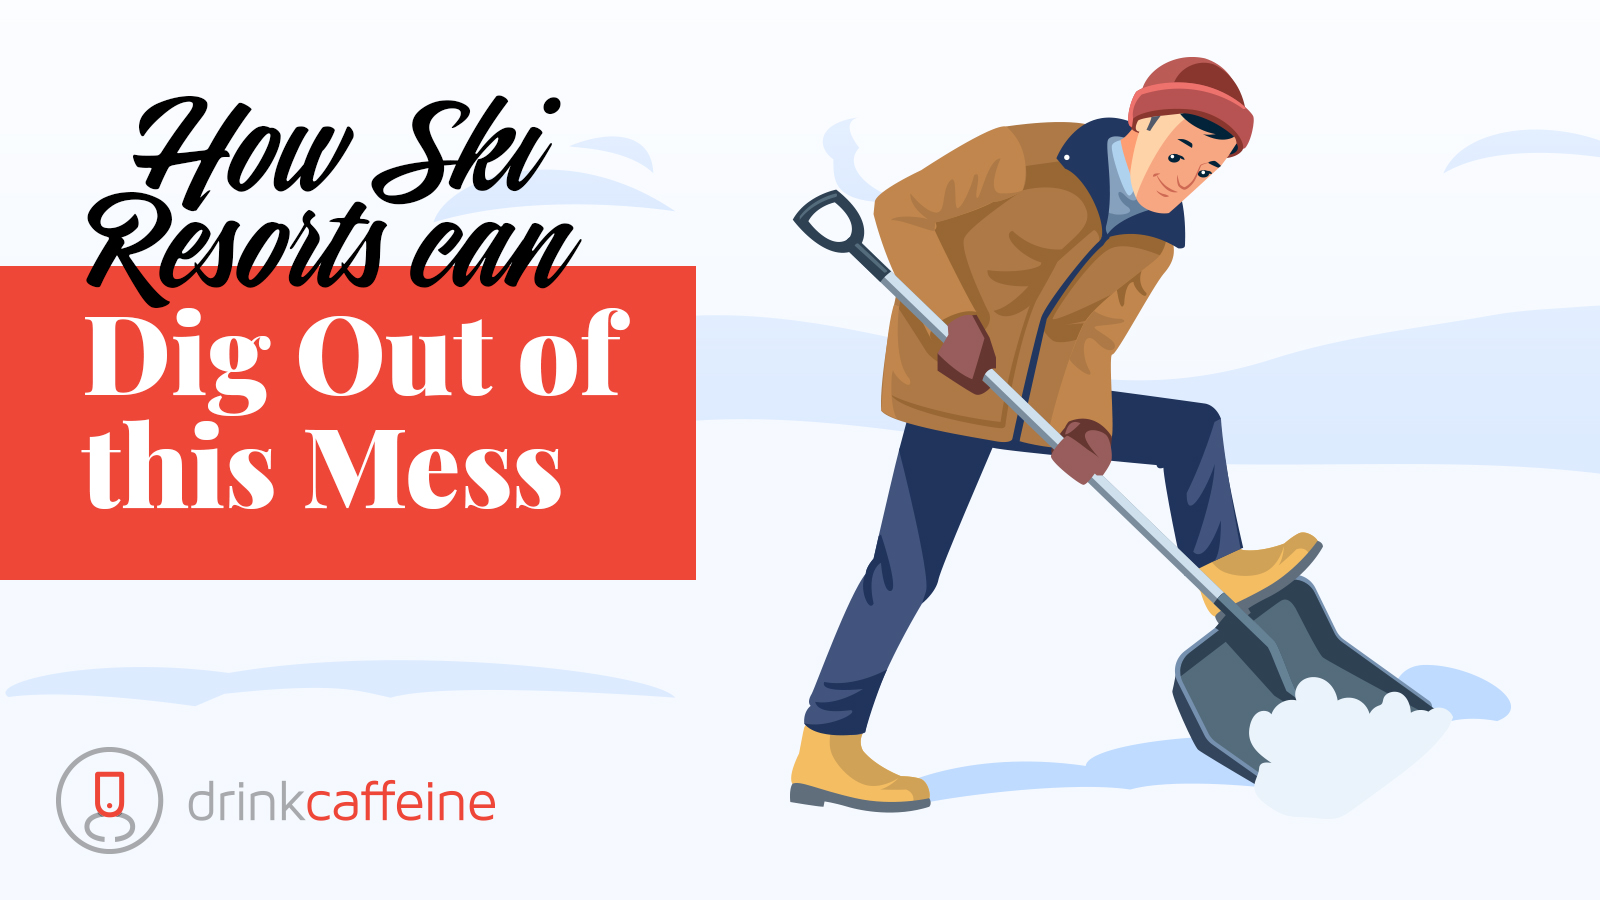 A clean approach to marketing this ski season blog image